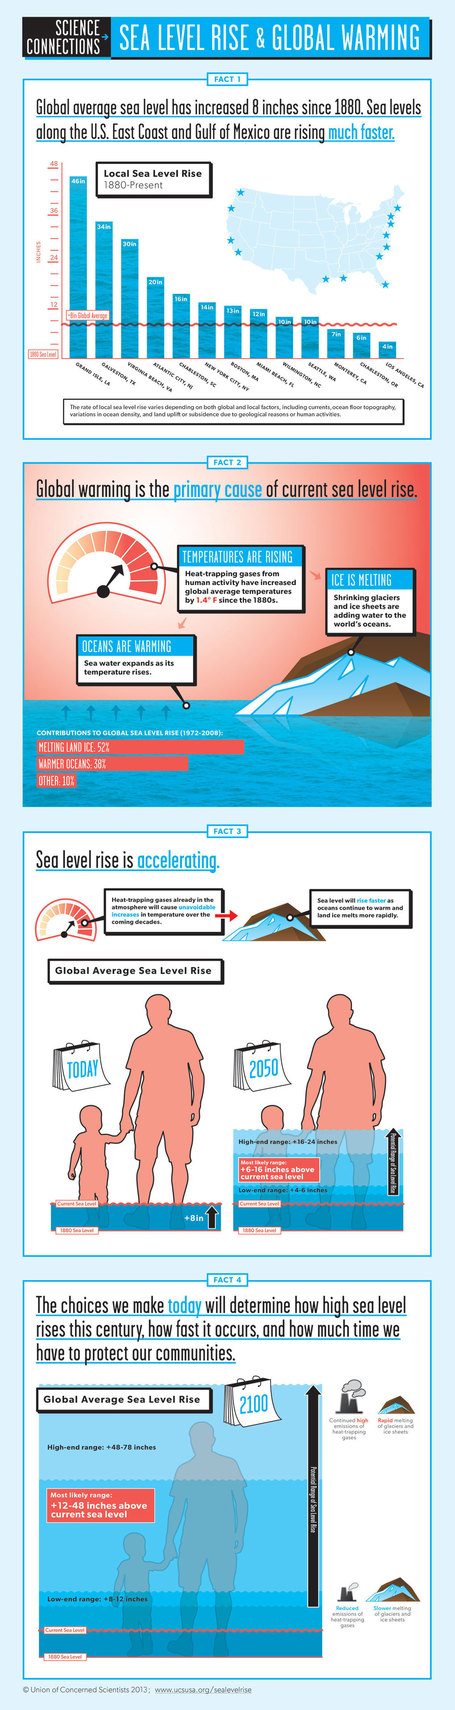 Sea-Level-Rise-and-Global-Warming-Infographic-All-Facts_Full-Size.jpg (1200x4511 pixels) | Exploring Life | Scoop.it